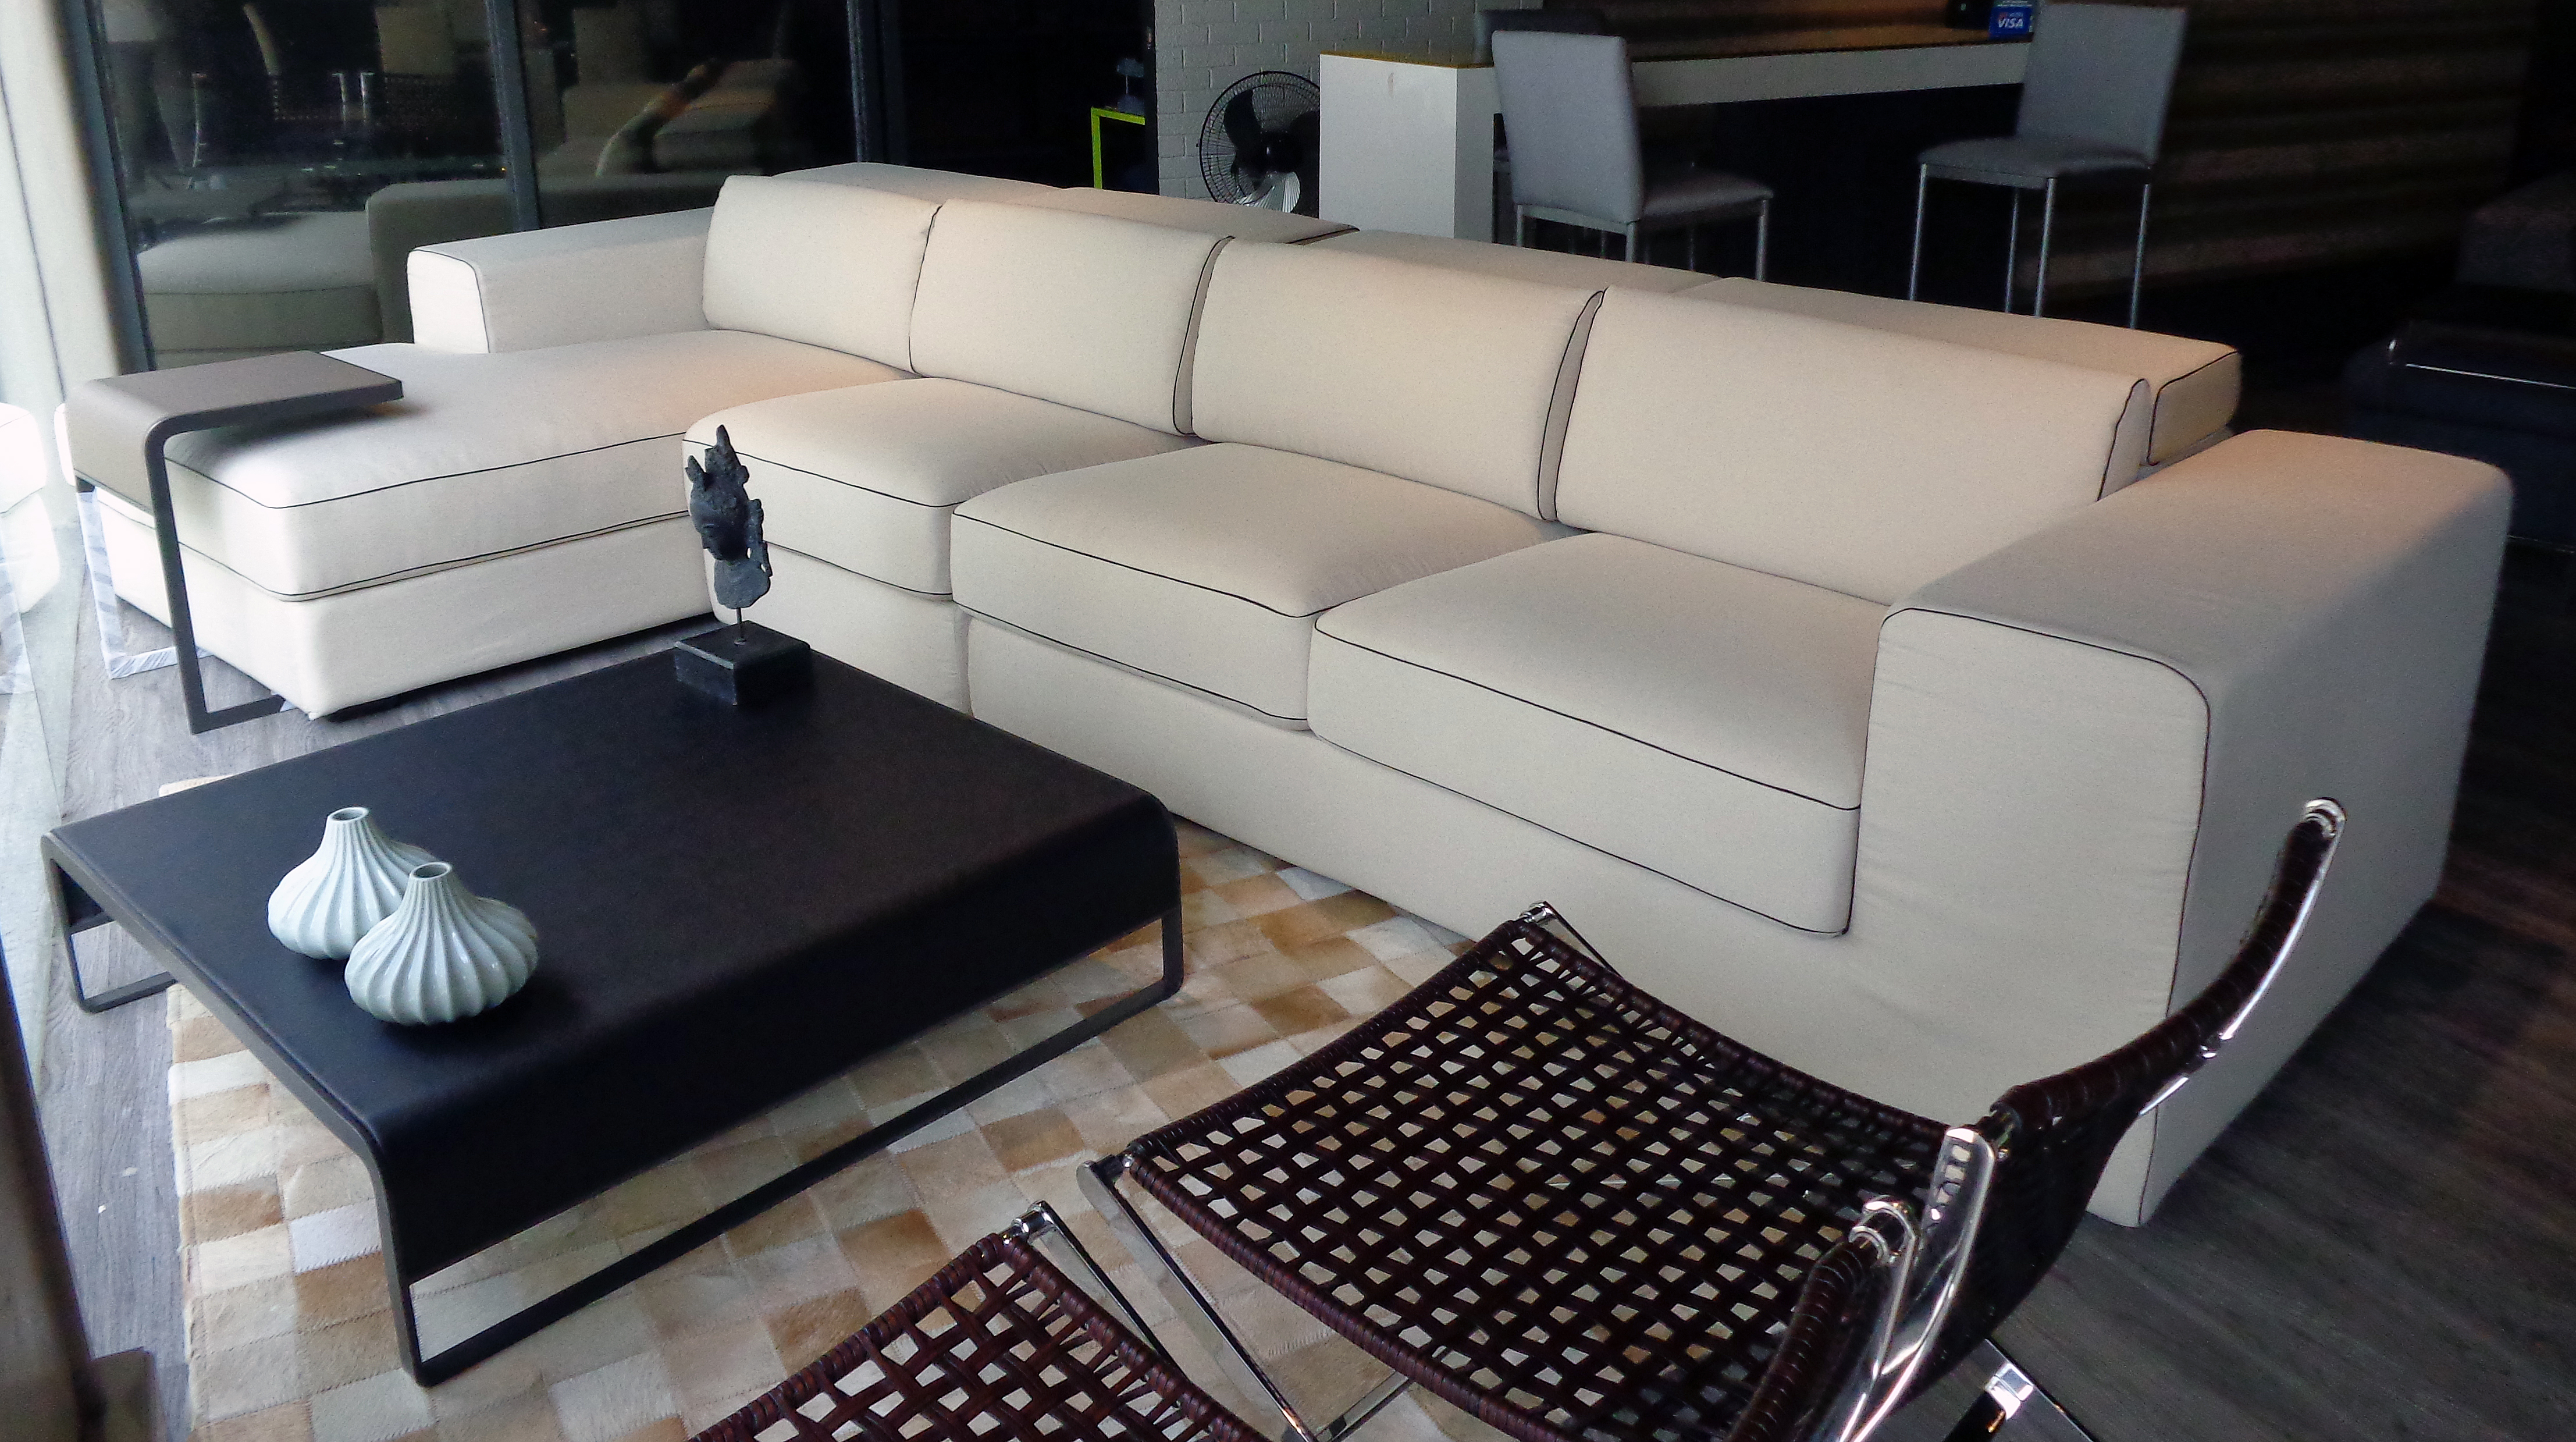 hc f8165 sectional sofa home central philippines With sectional sofa philippines